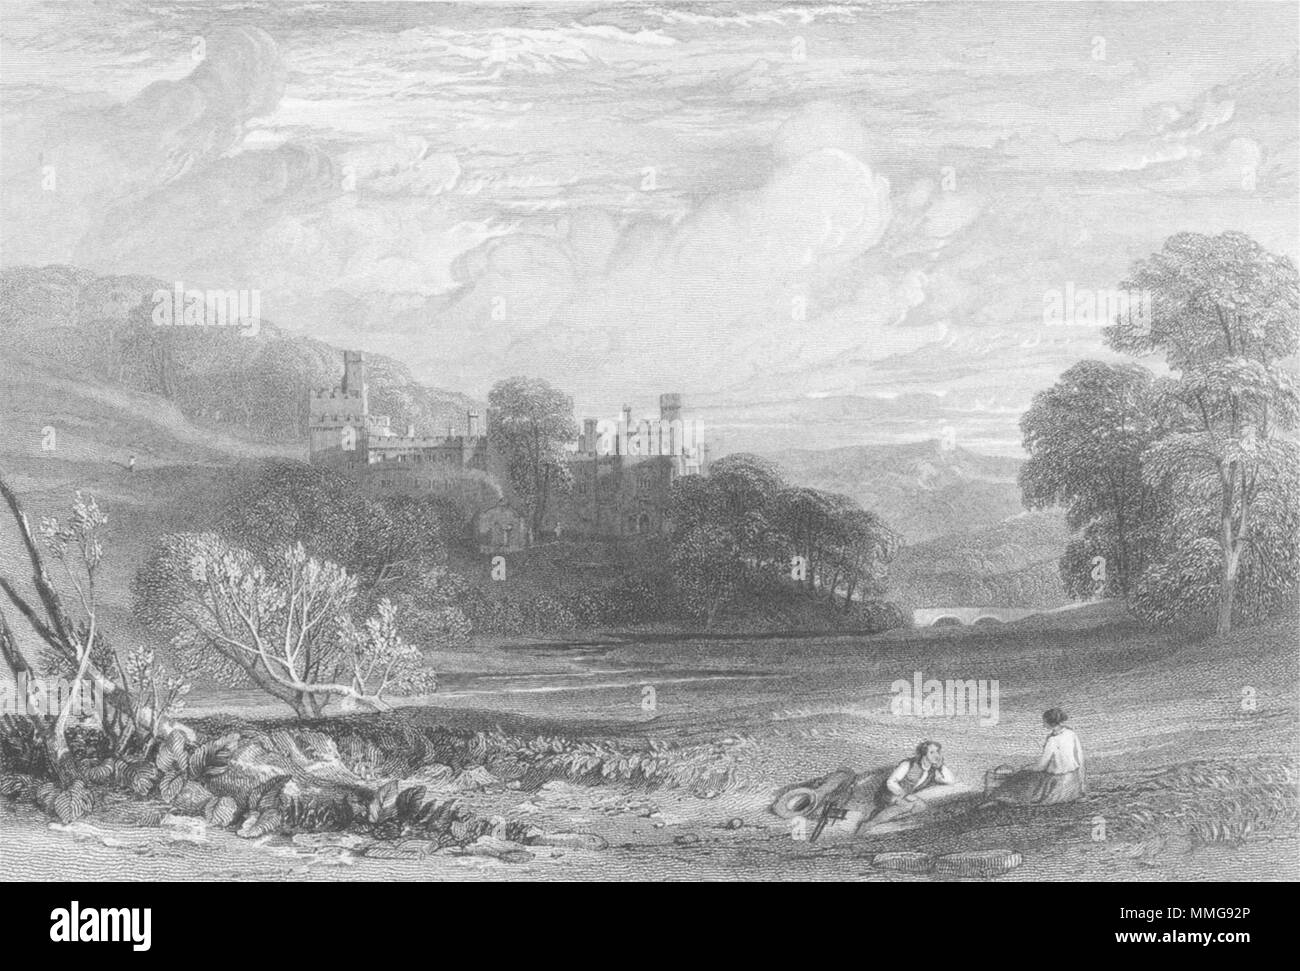 DERBYS. Haddon Hall, Derbyshire. Leitch 1850 old antique vintage print picture - Stock Image